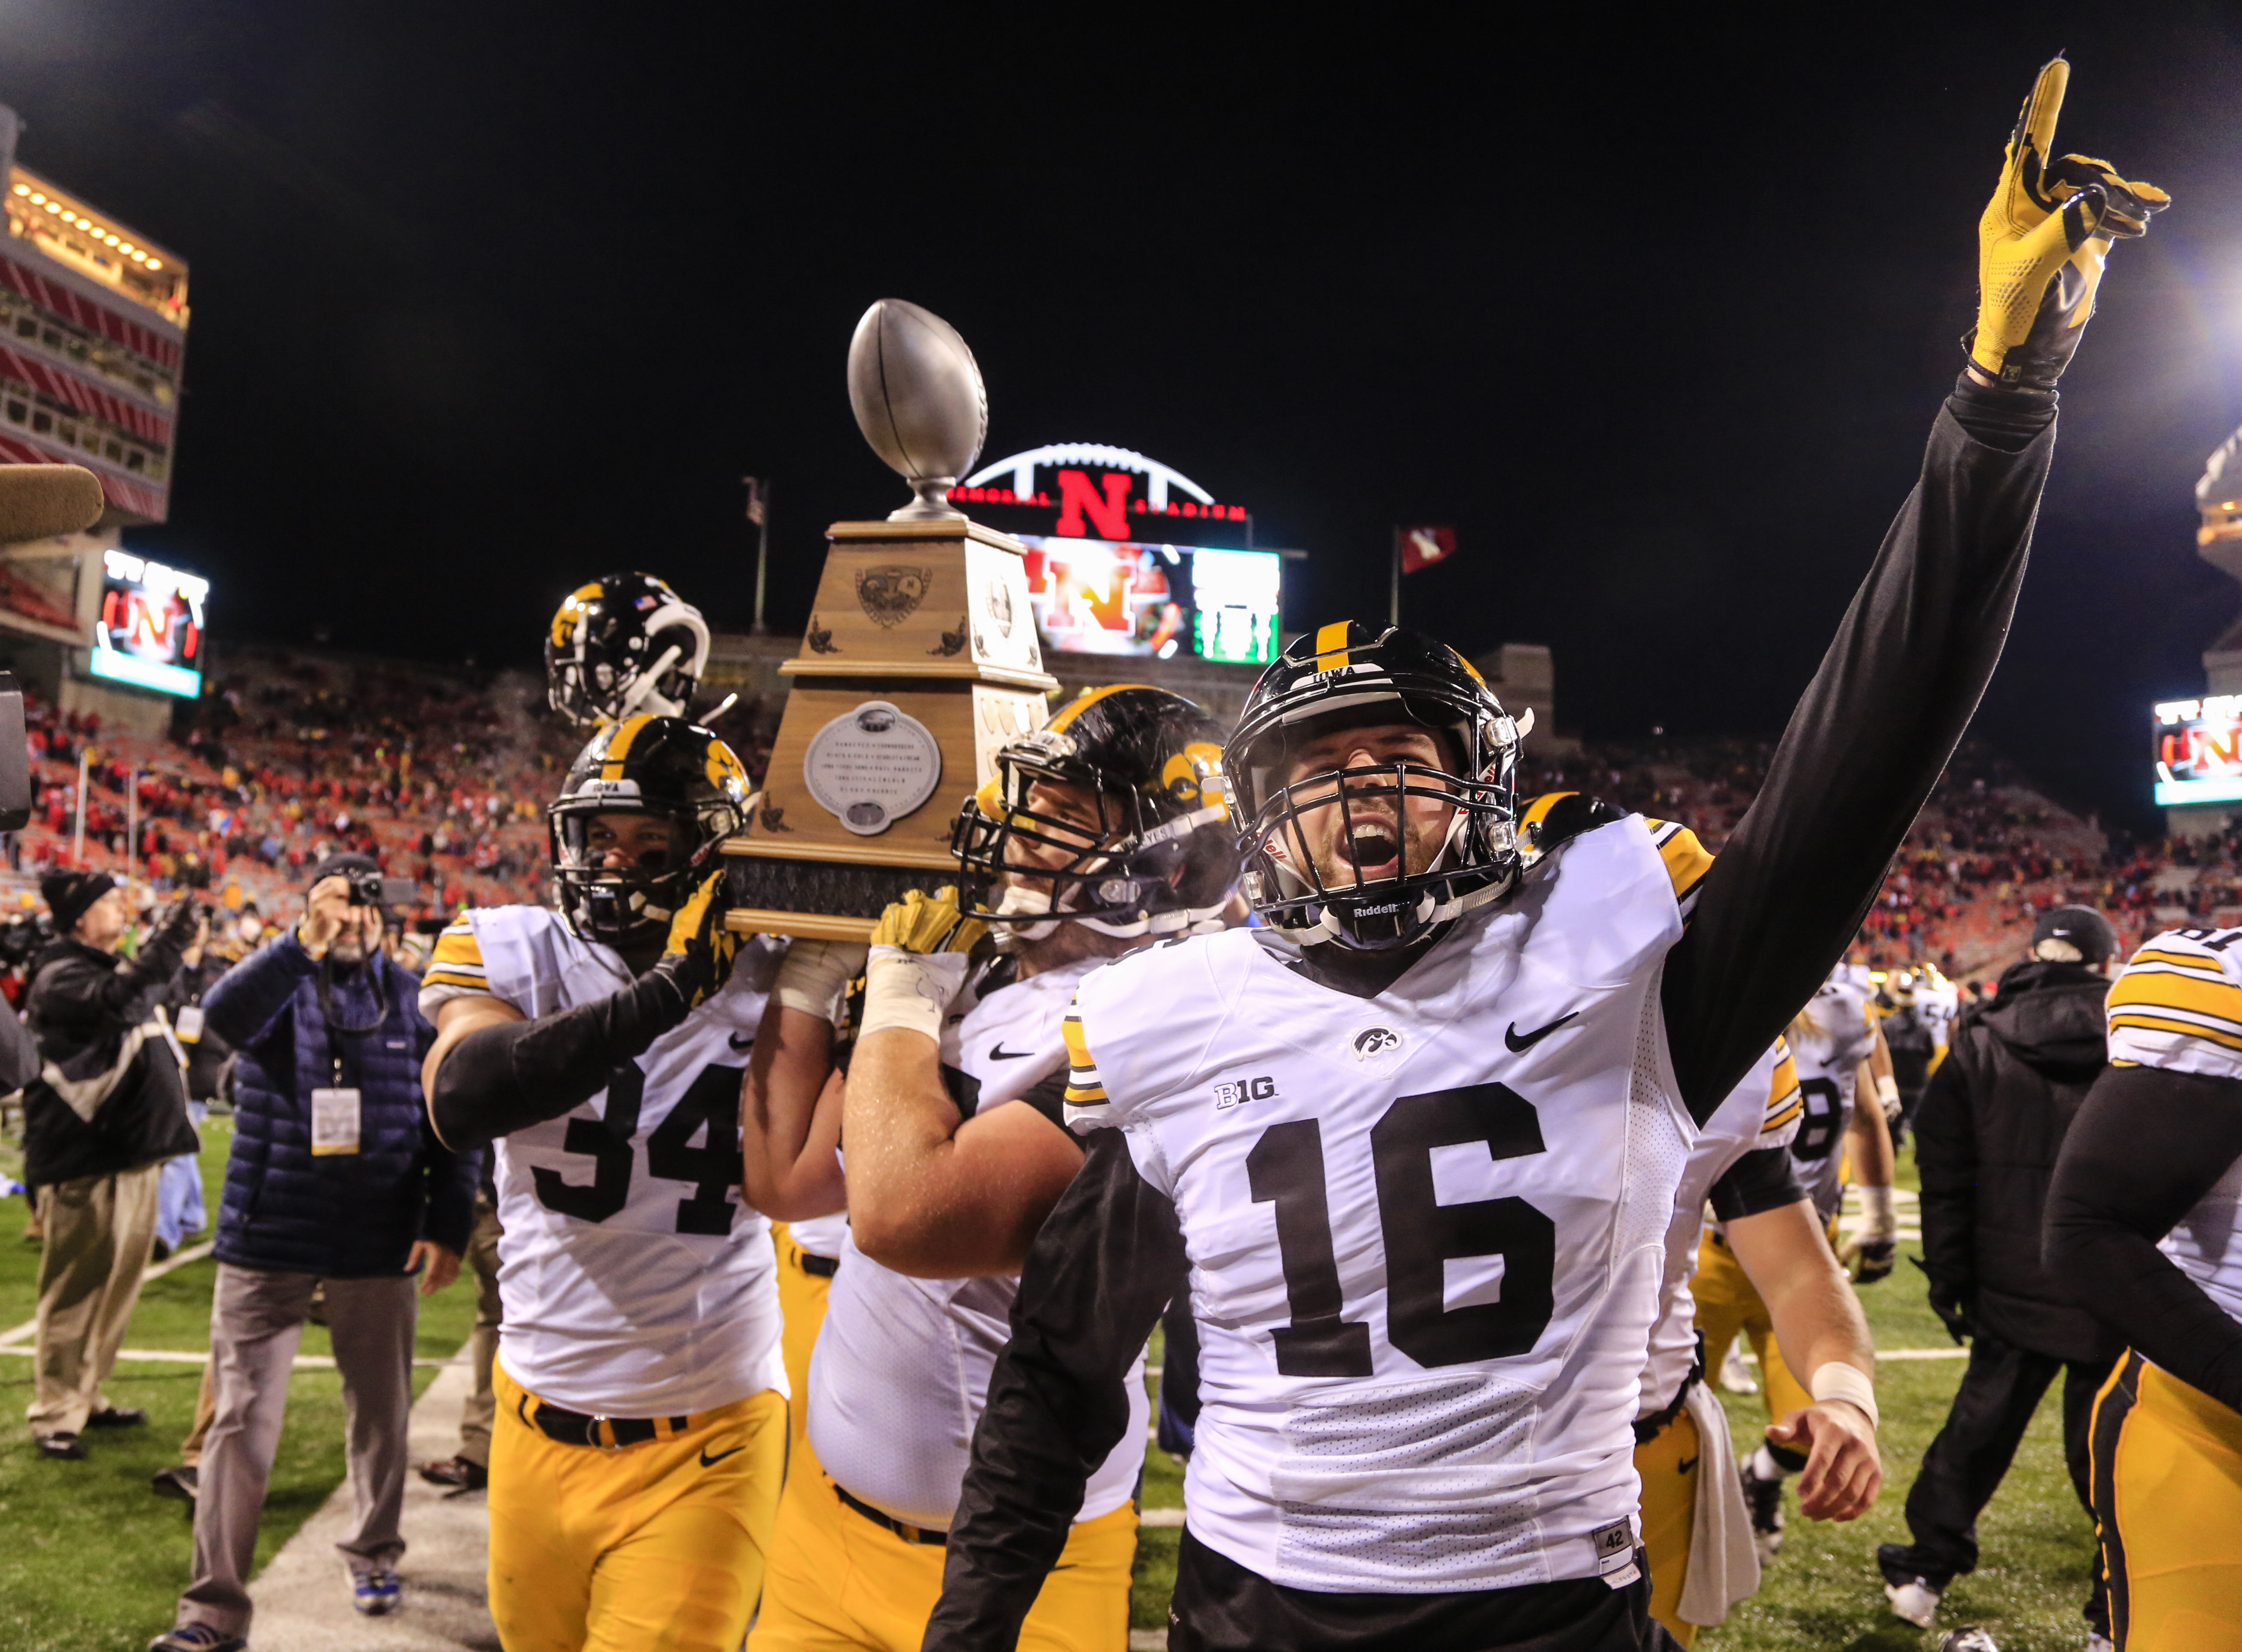 Iowa players, including Nate Meier (34) and Dillon Kidd (16), celebrate with the Heroes Trophy after defeating Nebraska 28-20 in an NCAA college football game in Lincoln, Neb., Friday, Nov. 27, 2015. (AP Photo/Nati Harnik)